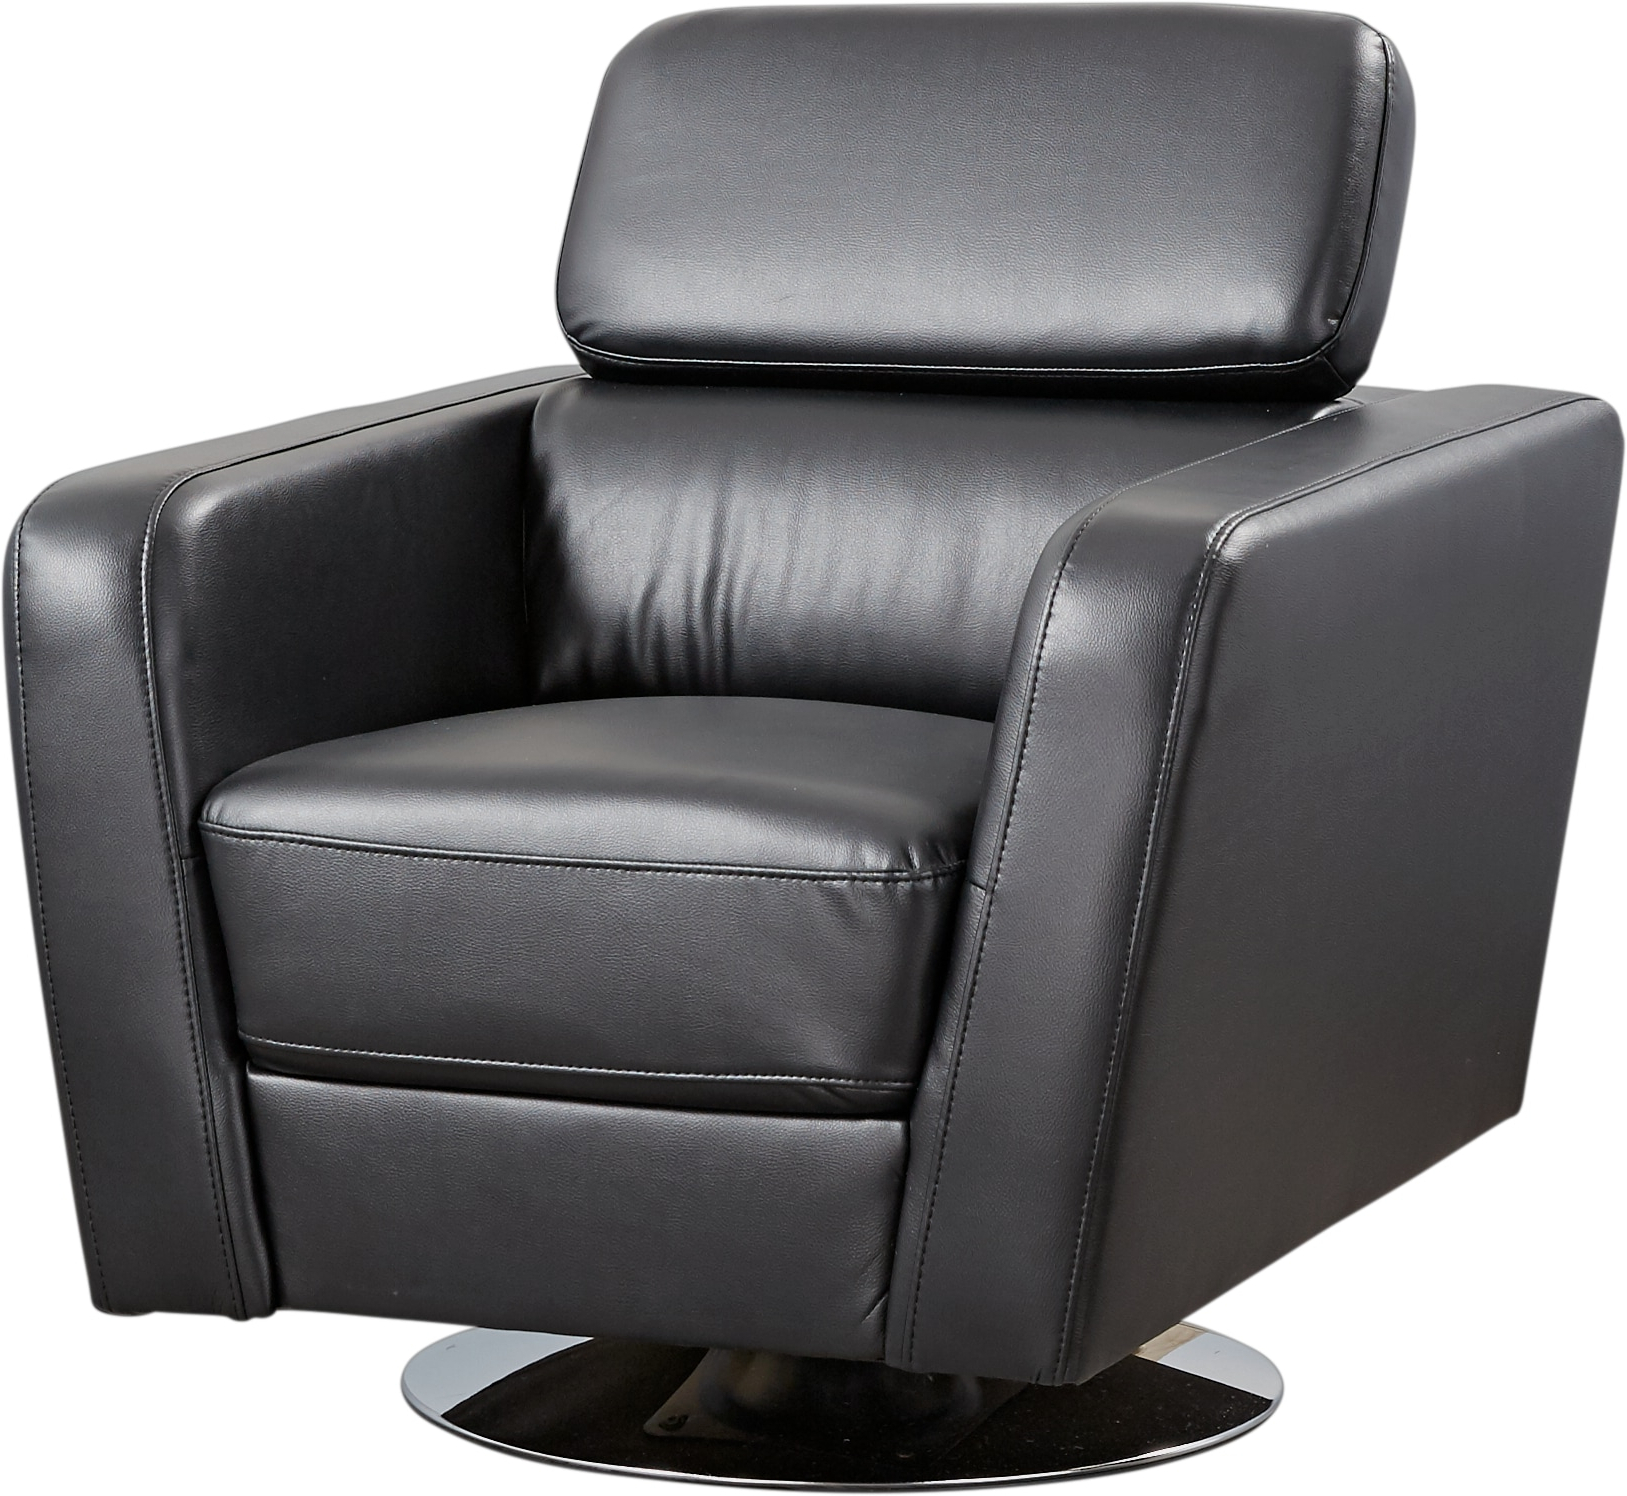 Dellinger Black Swivel Chair – Accent Chairs (black) Pertaining To Most Current Leather Black Swivel Chairs (View 11 of 20)